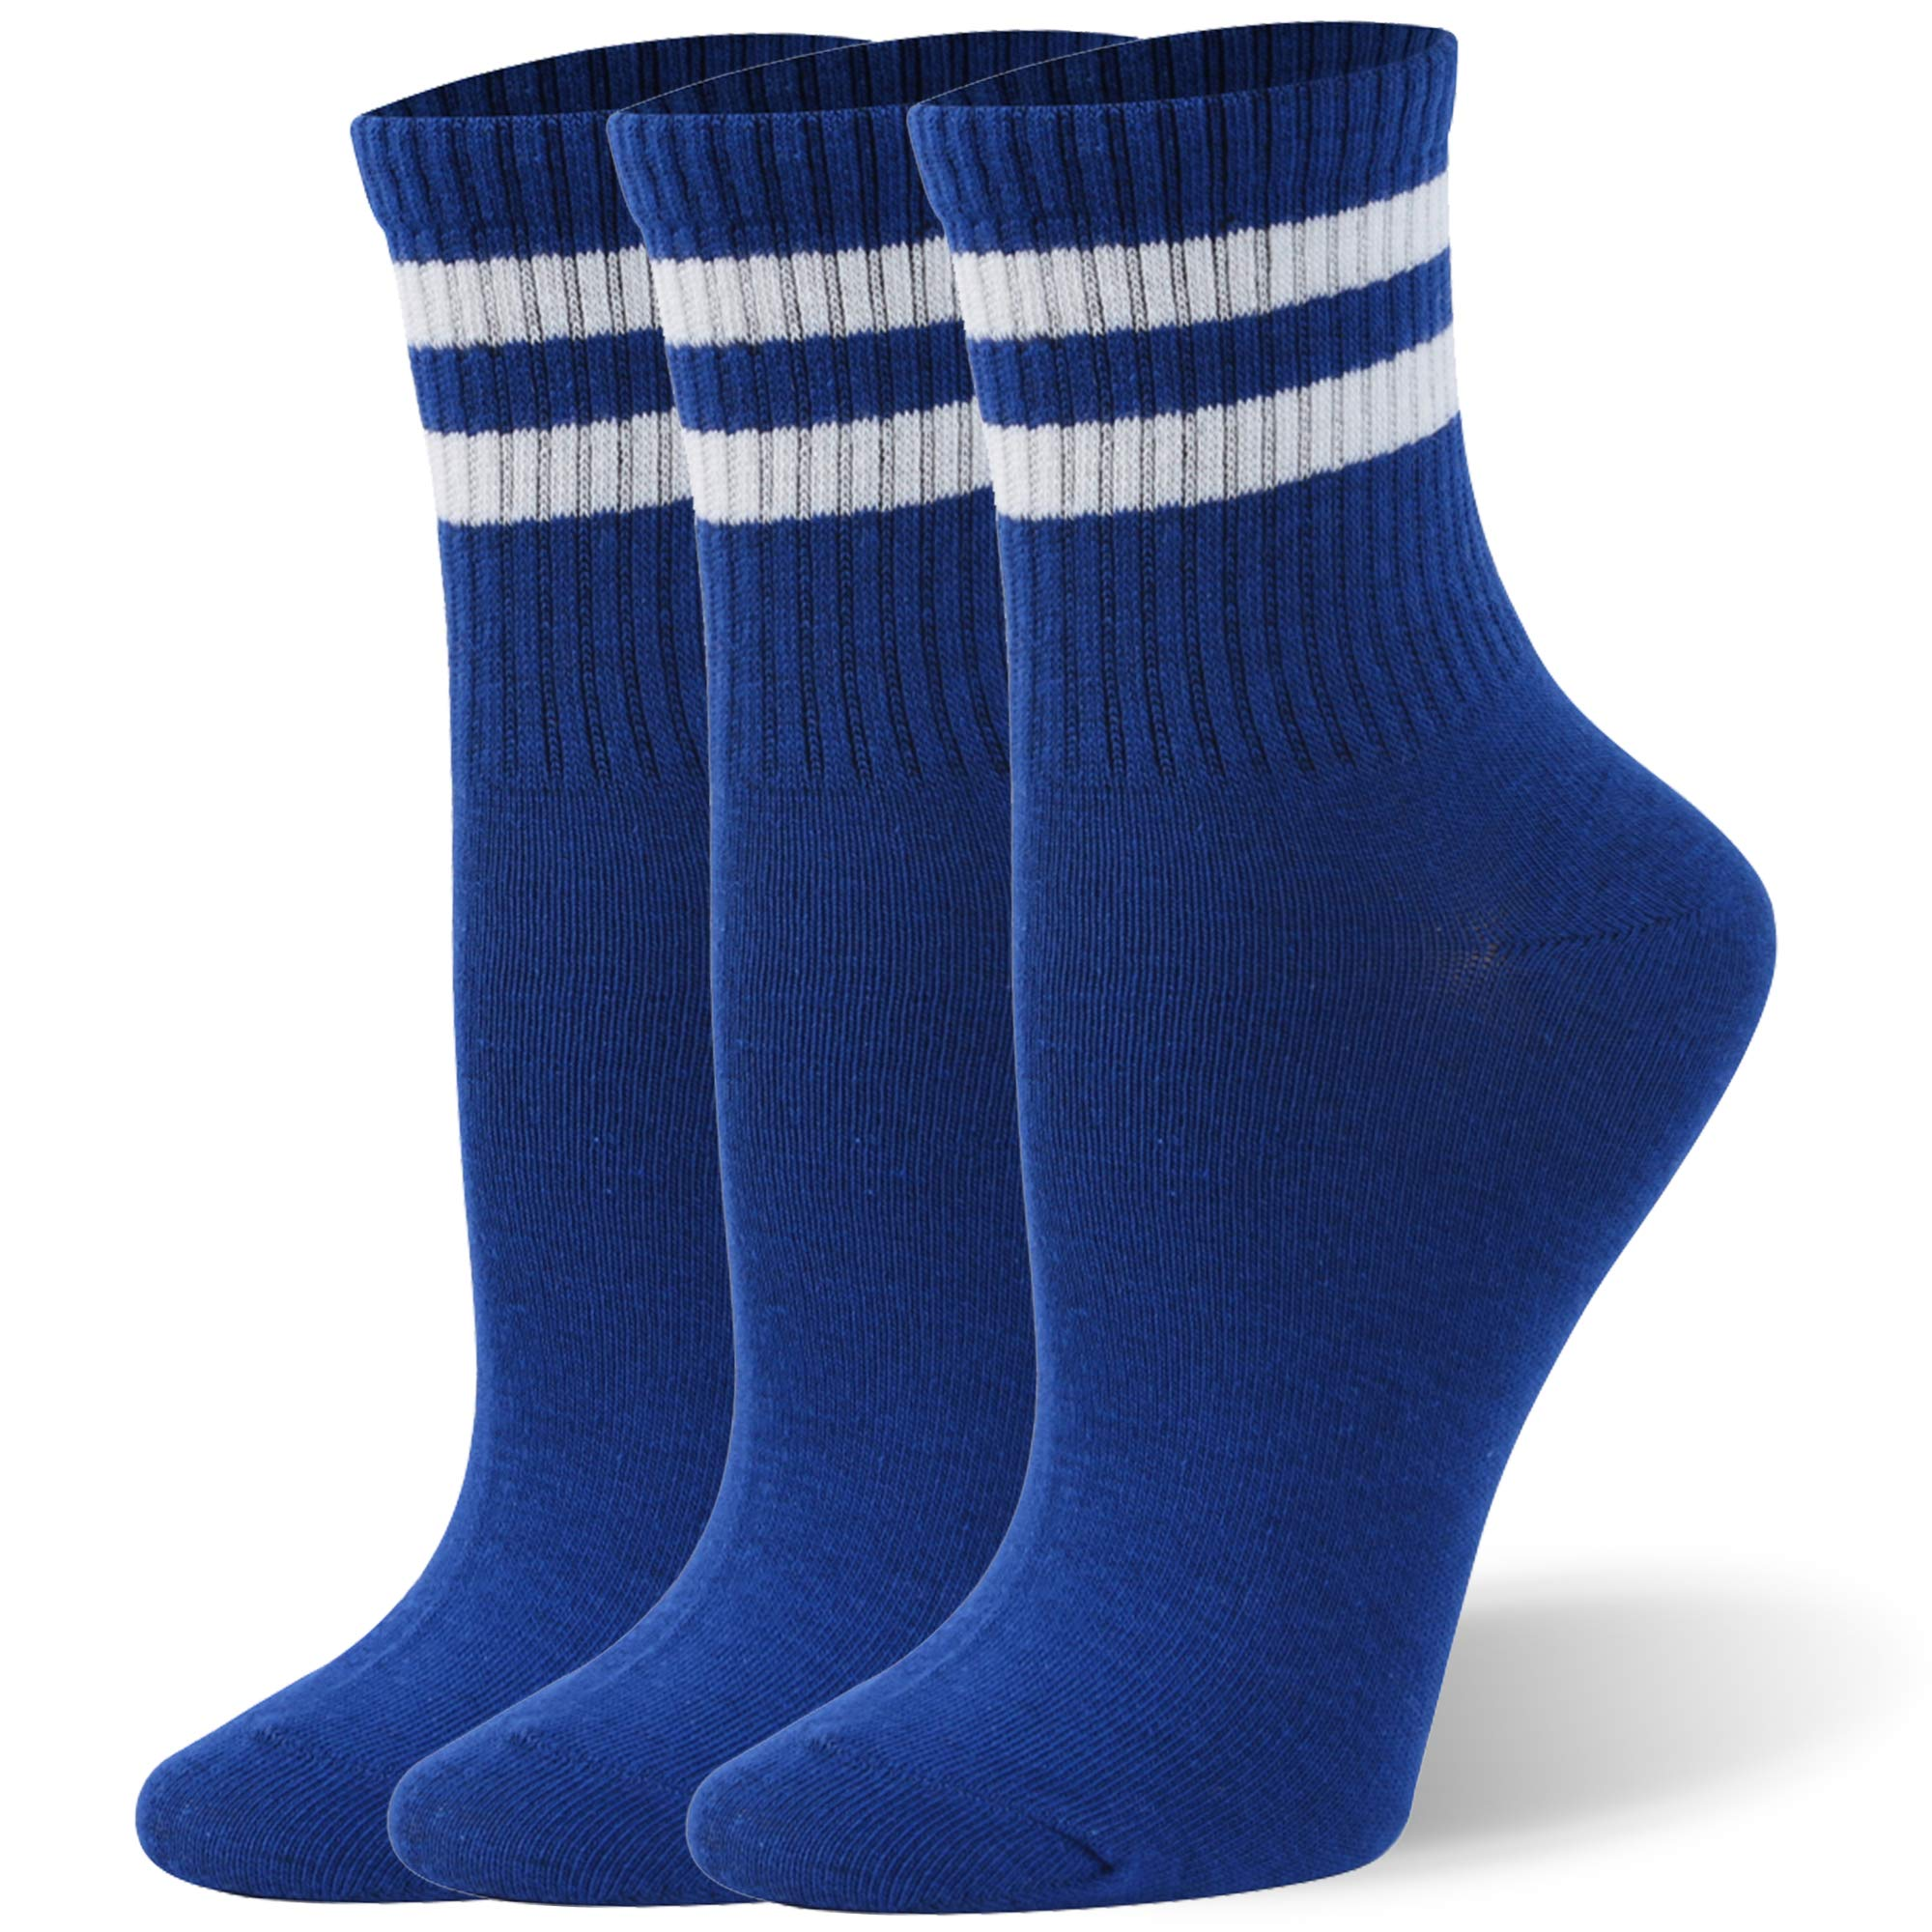 WXXM Casual Cotton Athletic Socks For Men & Women, Thin Breathable Running Socks Multicolor 3/6 pack